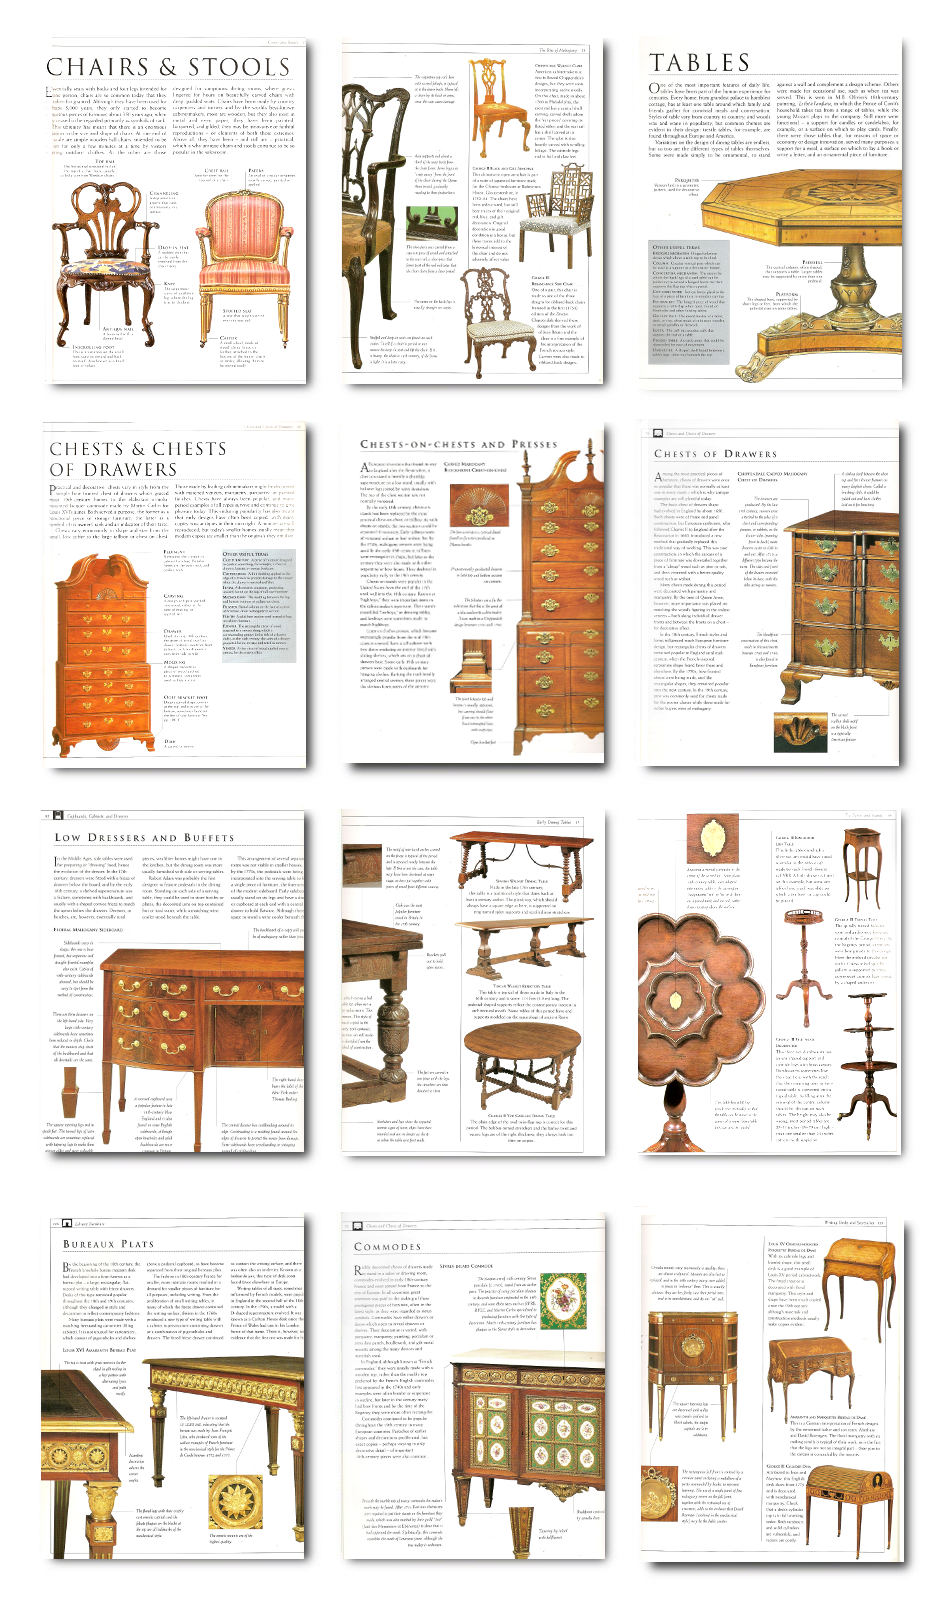 Antique furniture styles - A Must Have Antique Furniture Identification Guide Antique Furniture Tom Forrest